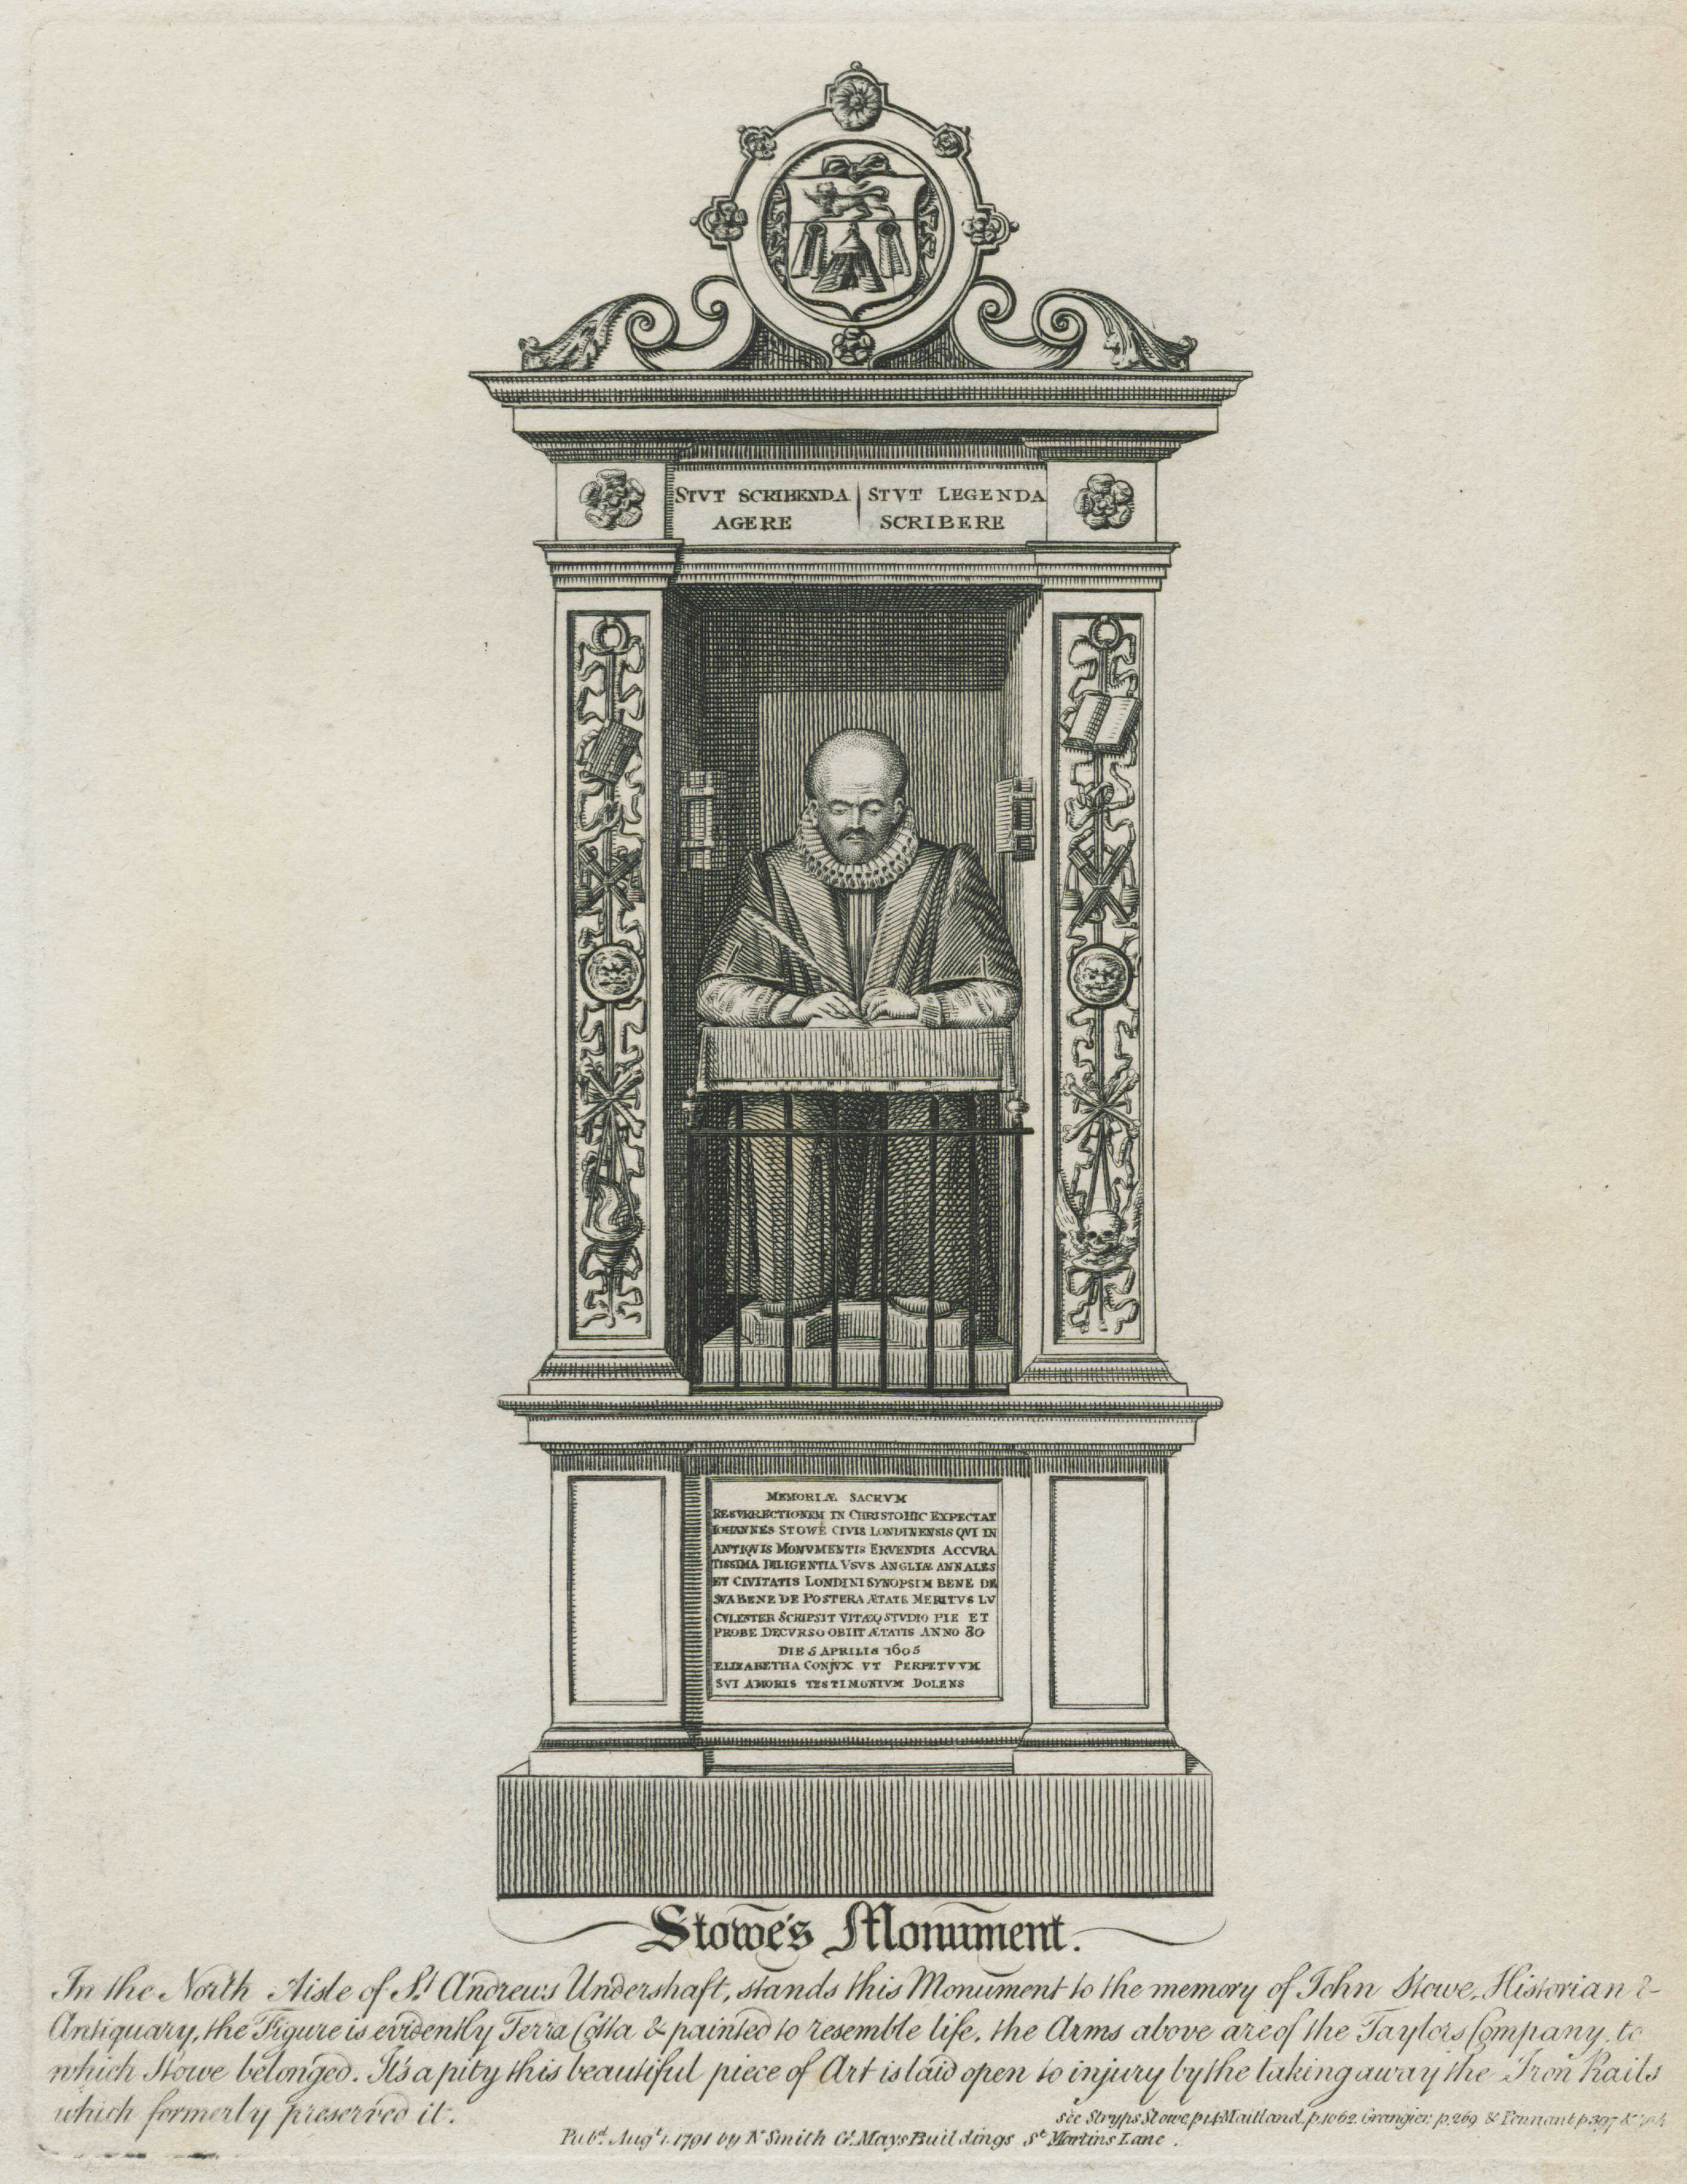 23-stowes-monument-in-the-north-aisle-of-st-andrews-undershaft